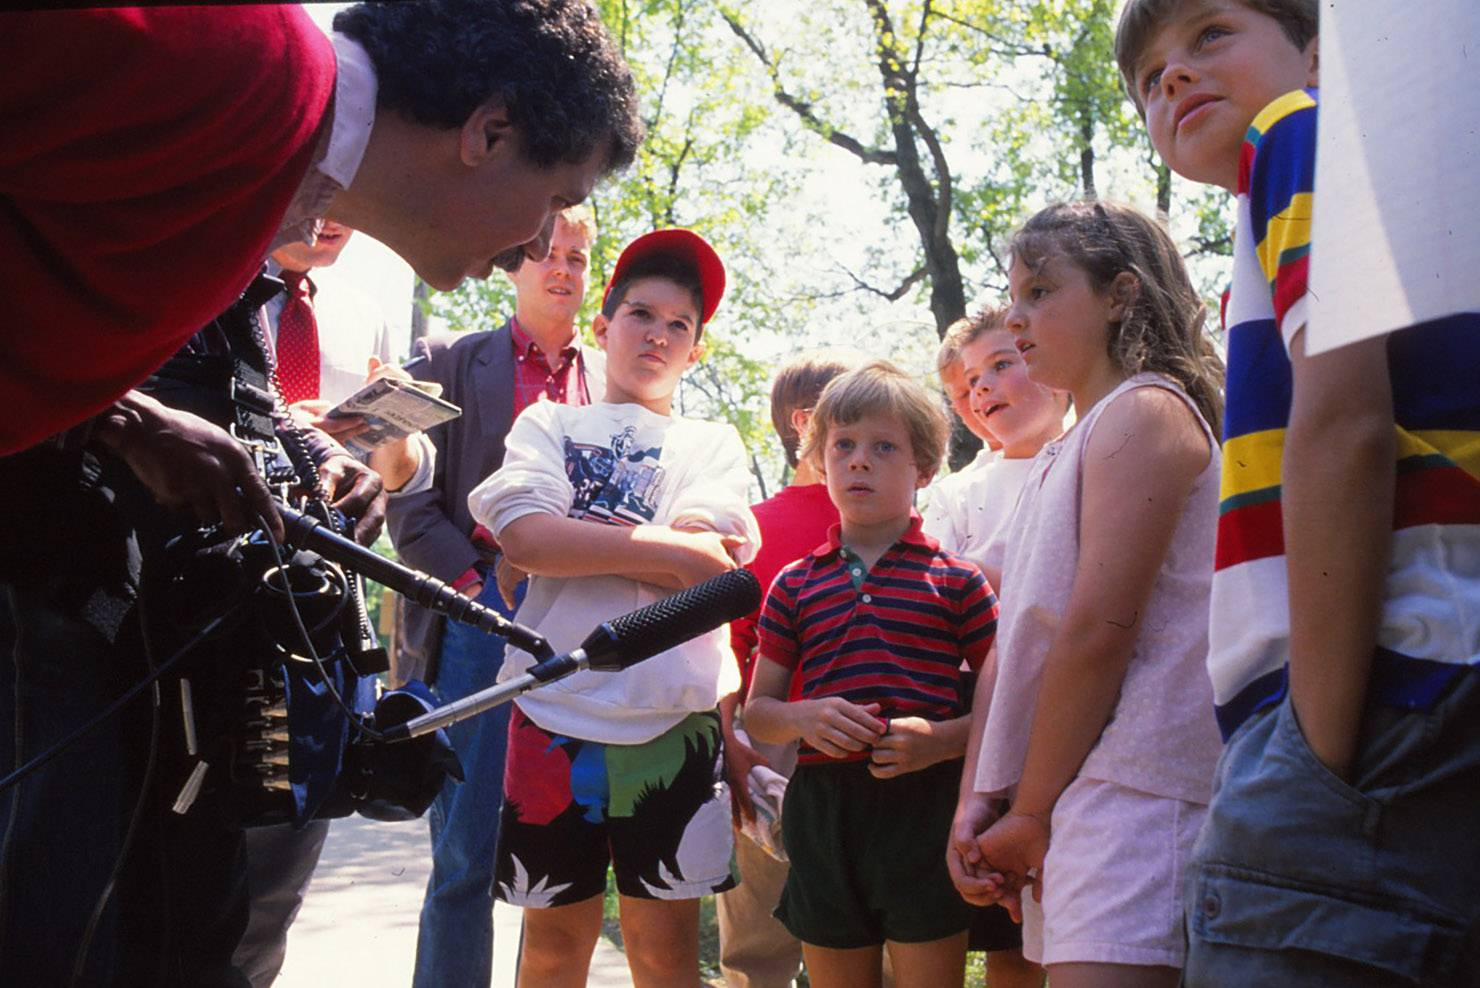 Reporters interviewed children in 1988 outside the Hubbard Woods Elementary School in Winnetka after a boy was killed and five other students critically hurt by an intruder with guns.